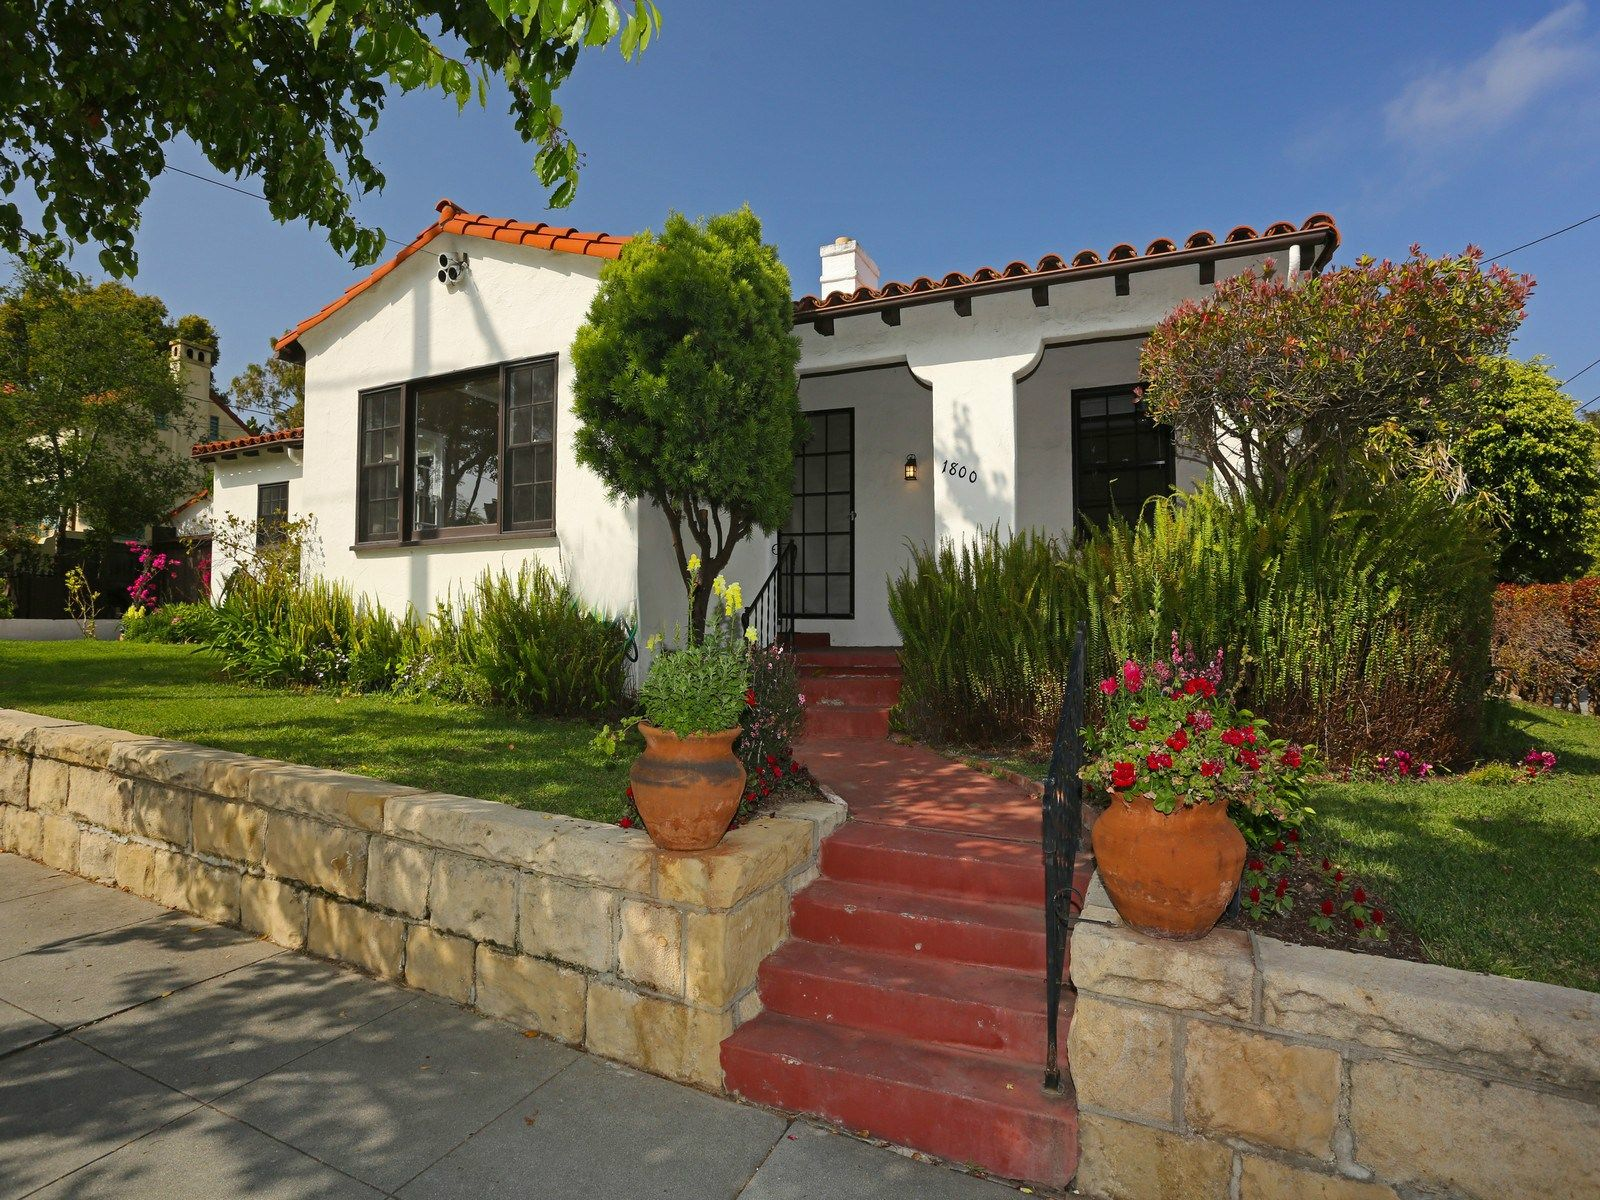 Upper East Spanish-Style Home, Santa Barbara CA Single Family Home - Santa Barbara Real Estate